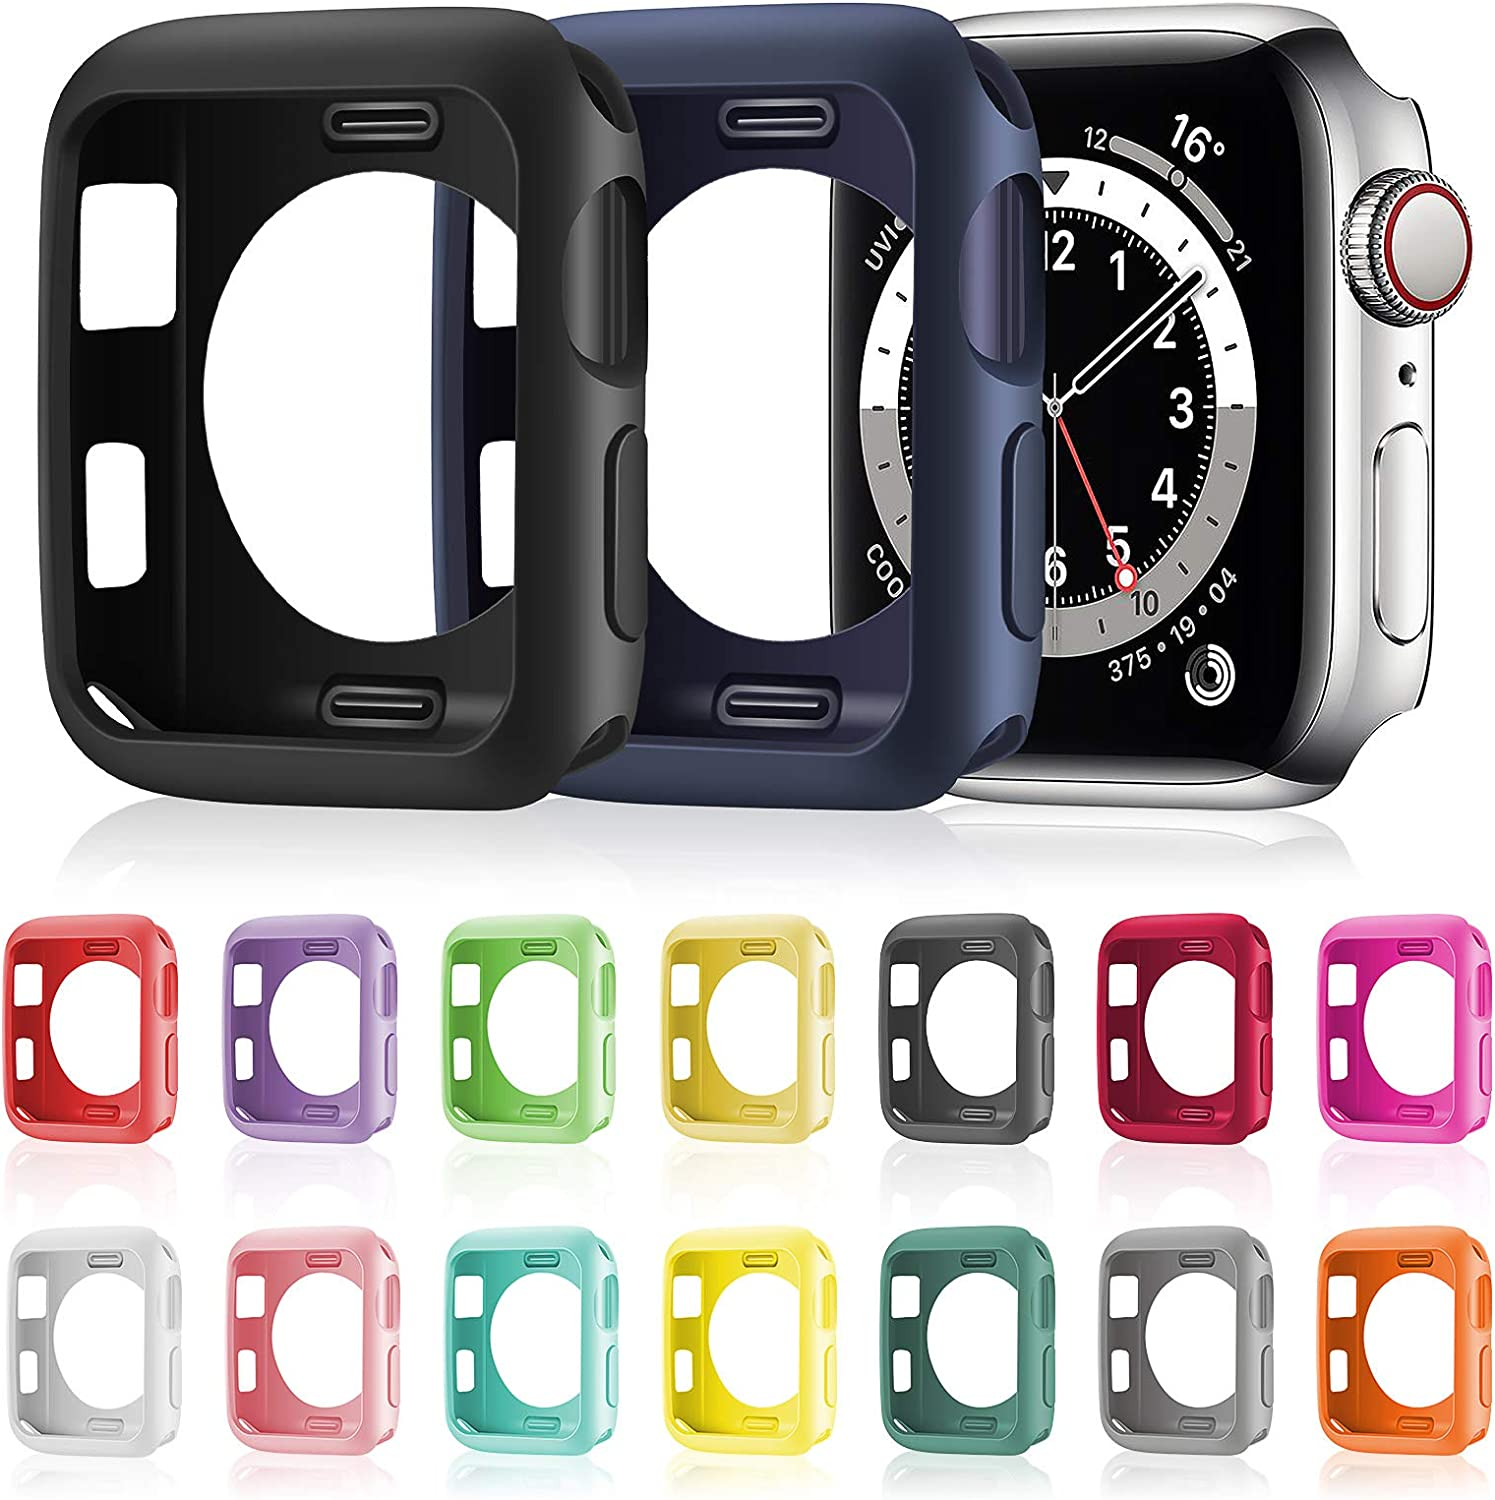 16 Pieces Soft TPU Protective Watch Case Anti-Scratch Silicone Protector Soft Flexible TPU Thin Lightweight Bumper Cover for Smartwatch Series SE/6/5/4/3/2/1 (44 mm)